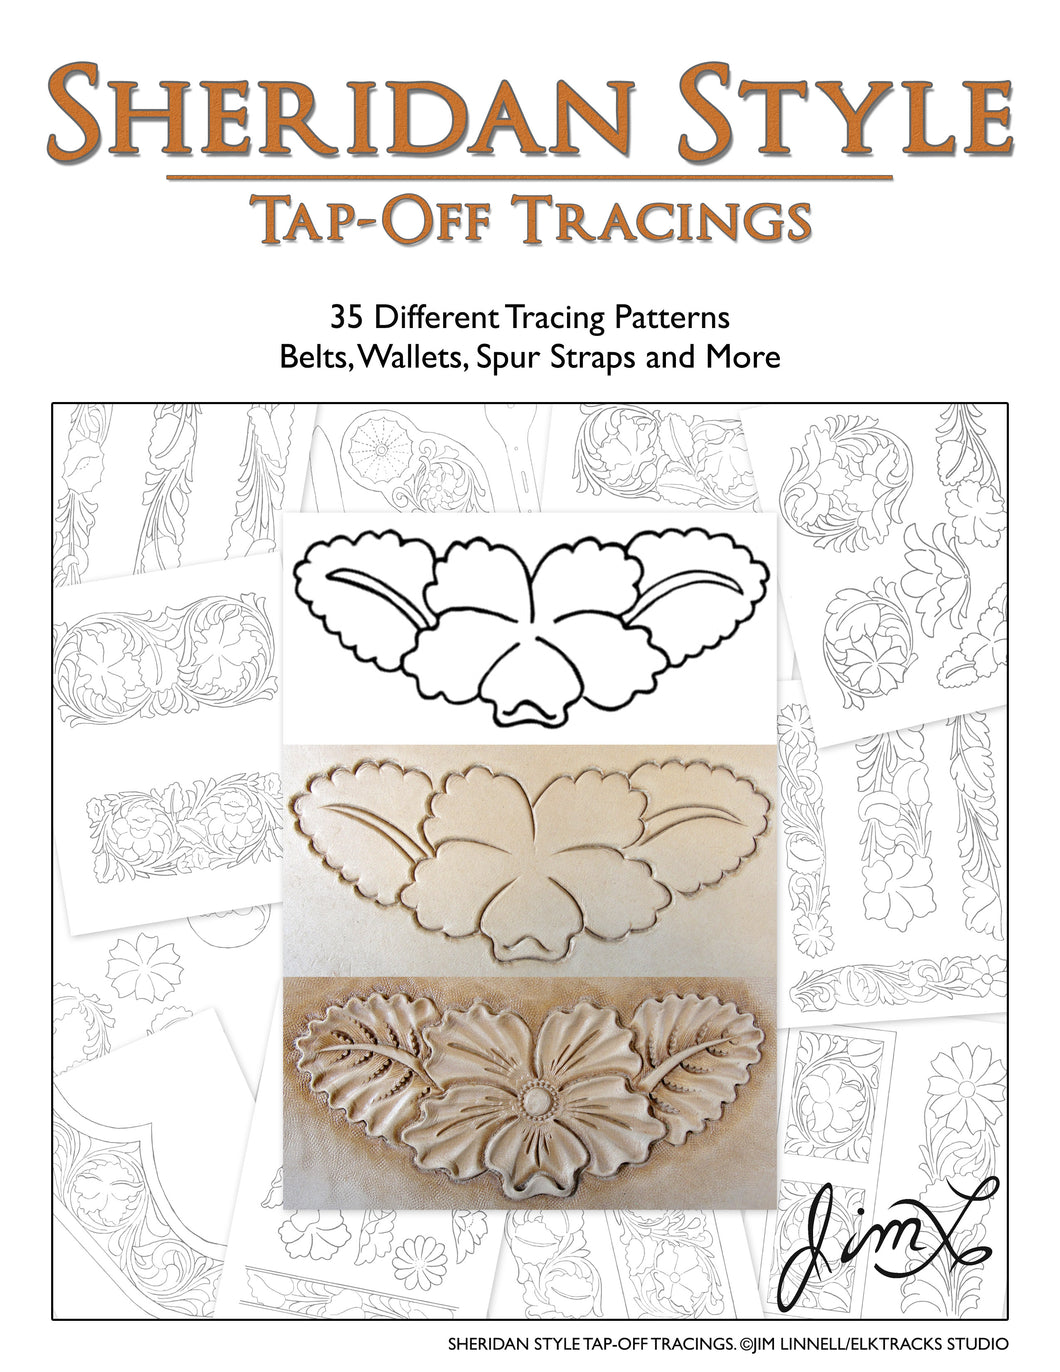 Sheridan Style Tap-Off Tracings